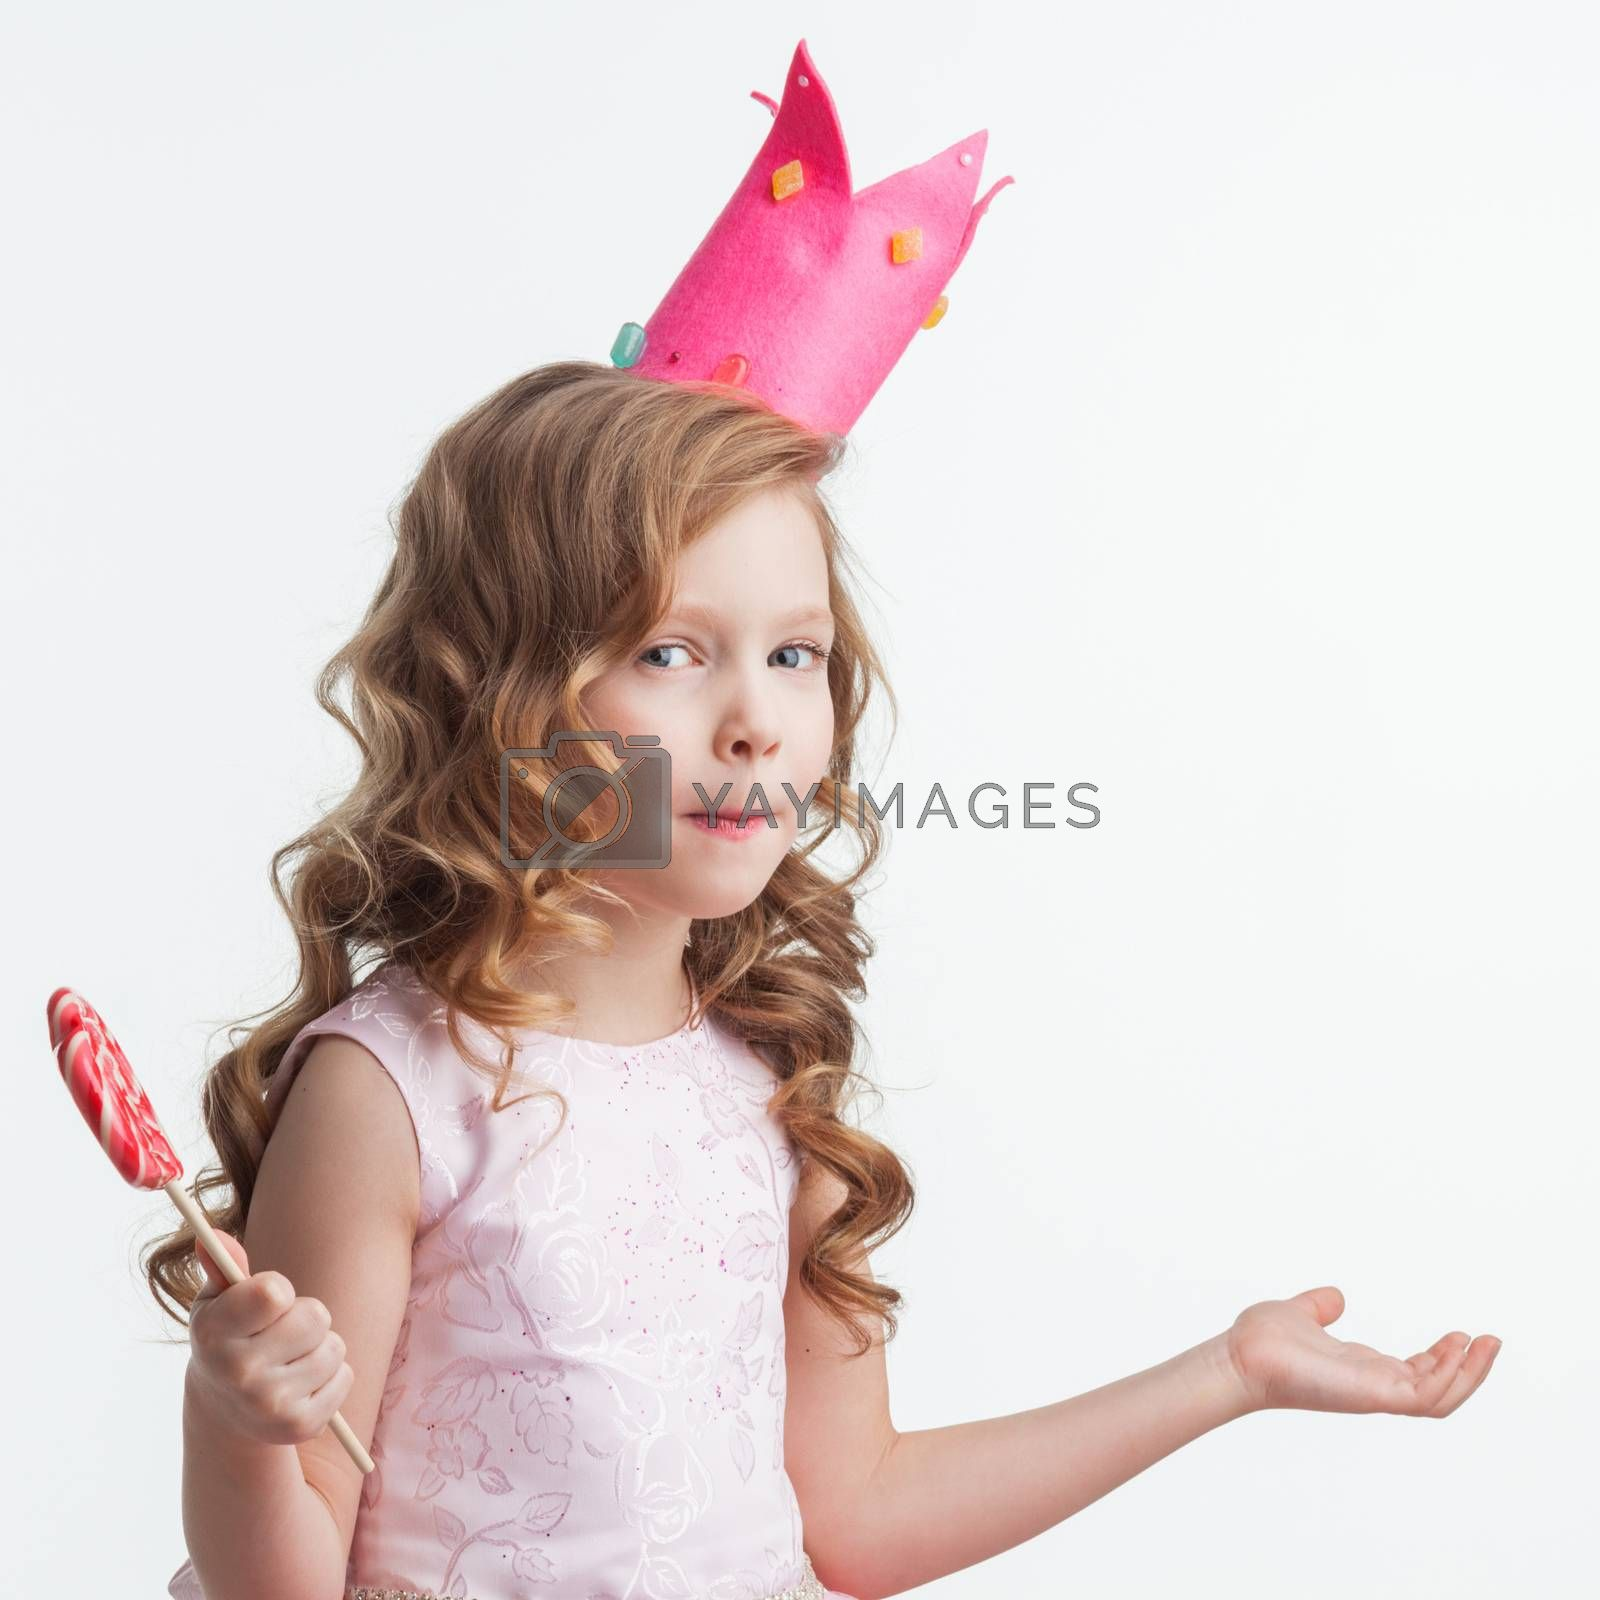 Beautiful little candy princess girl in crown holding big lollipop and posing with hands up in air saying, why, i dont know, so what isolated on white background